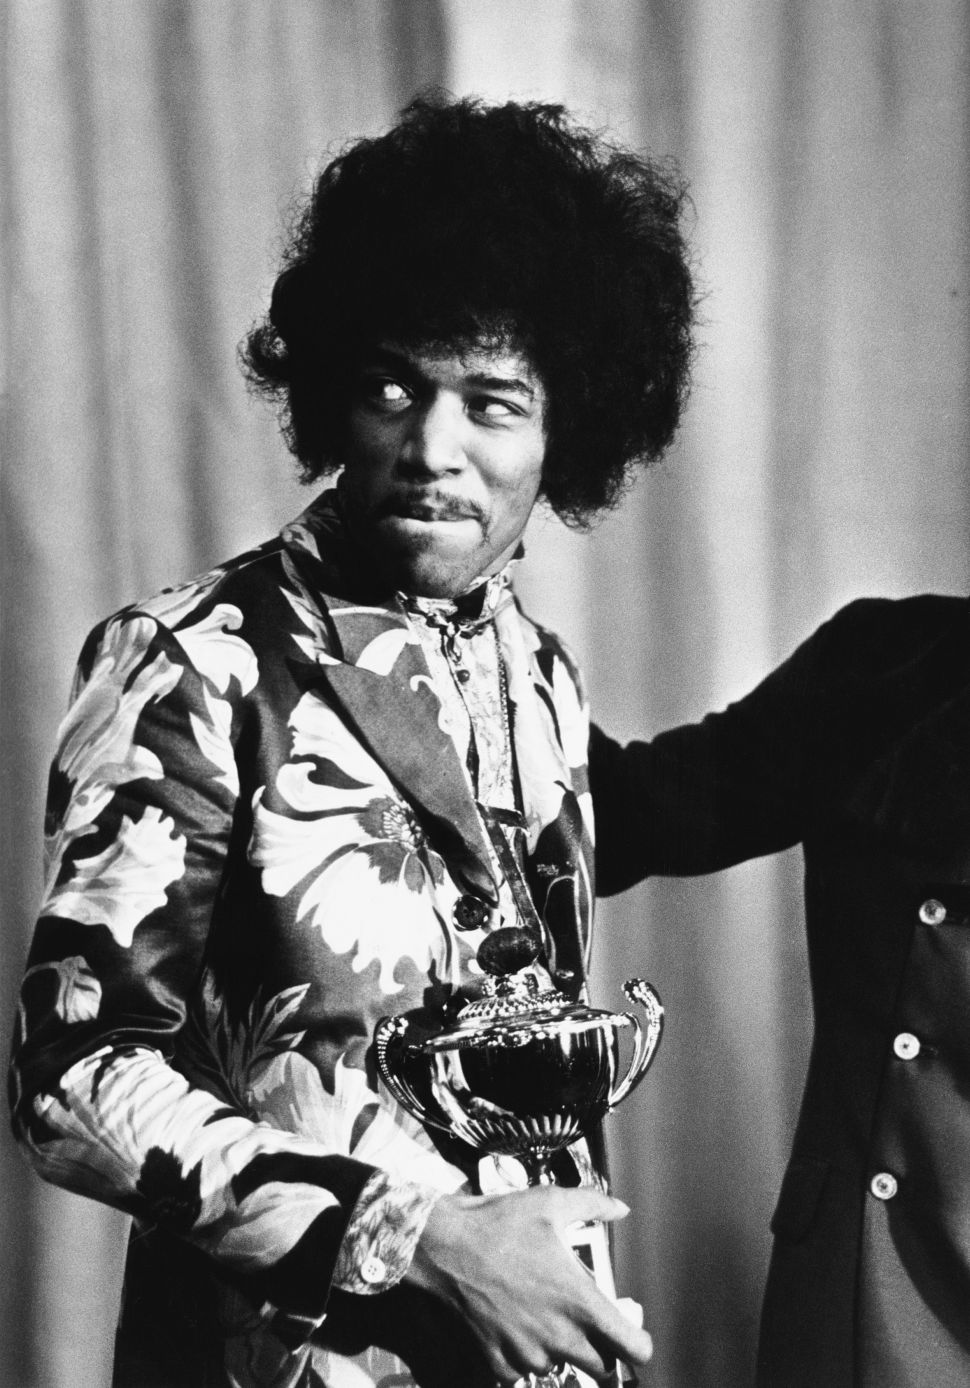 A Celeb-Beloved Greenwich Village Condo With Jimi Hendrix Ties Just Sold for $5.62M